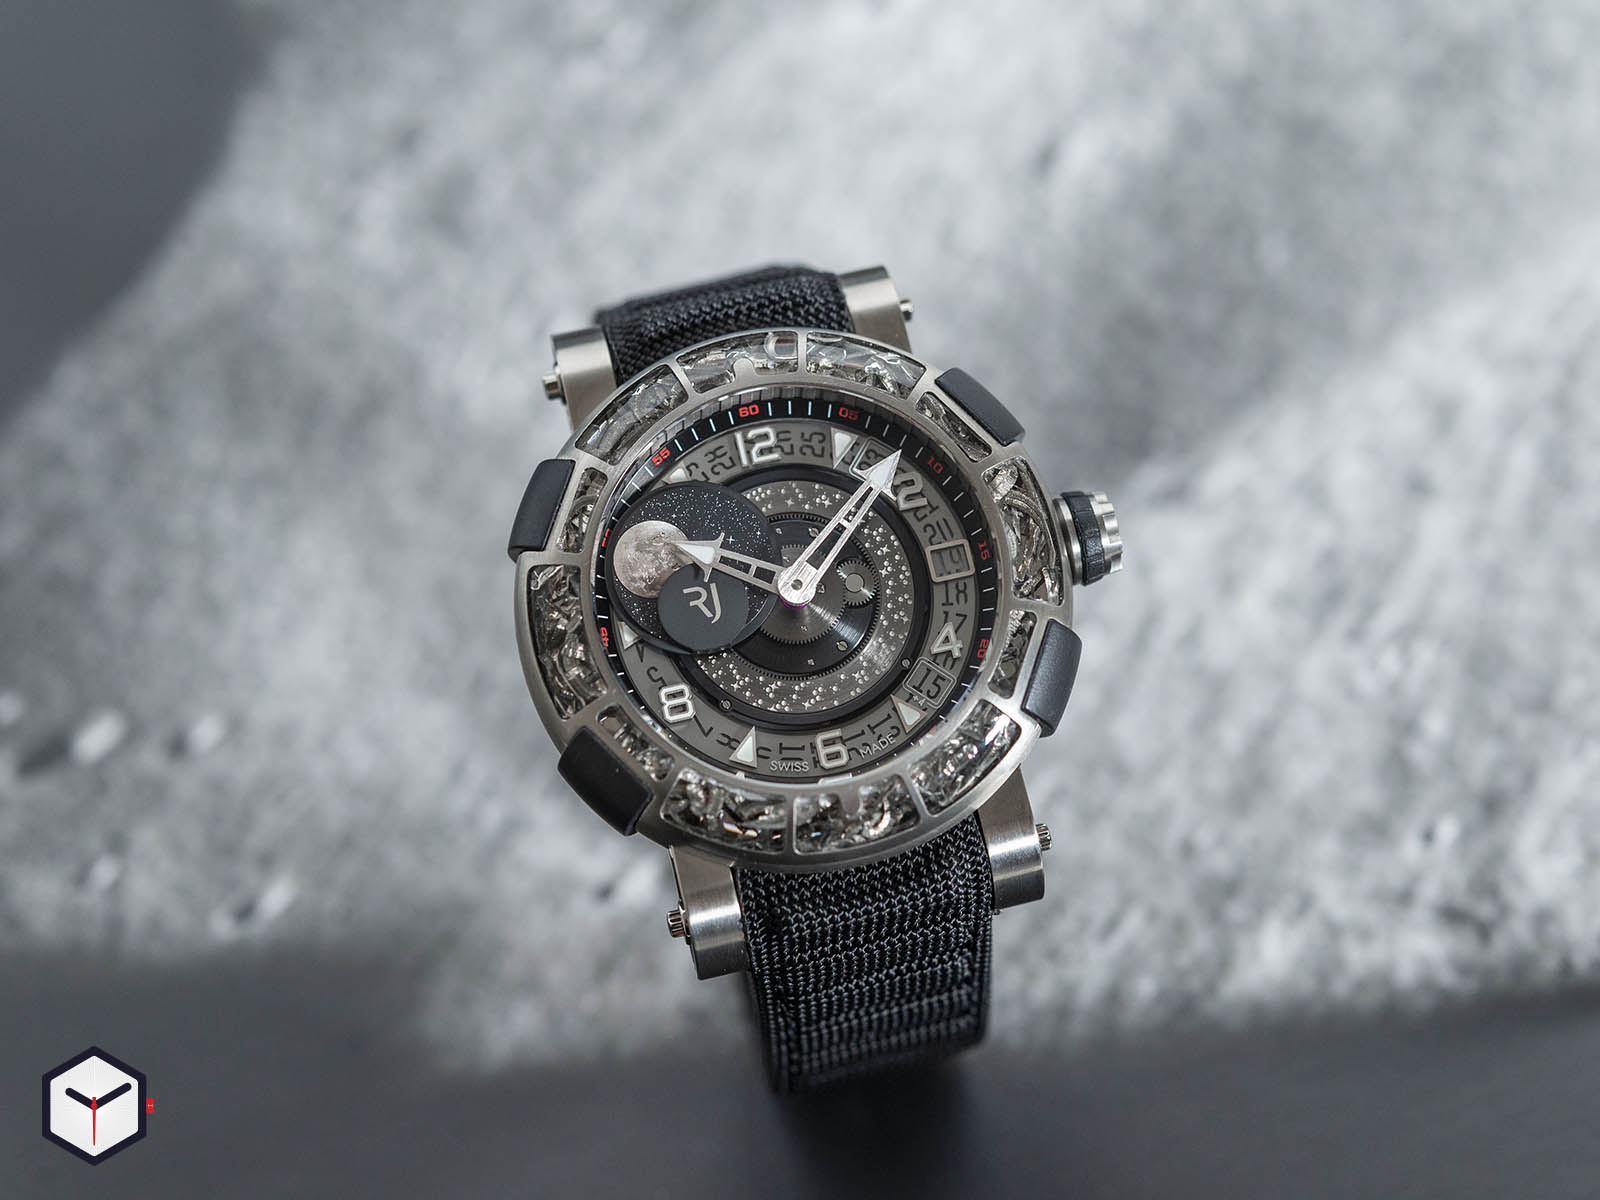 1s45l-tztr-8023-pr-asn19-romain-jerome-arraw-6919-space-titanium-sihh-2019-1.jpg